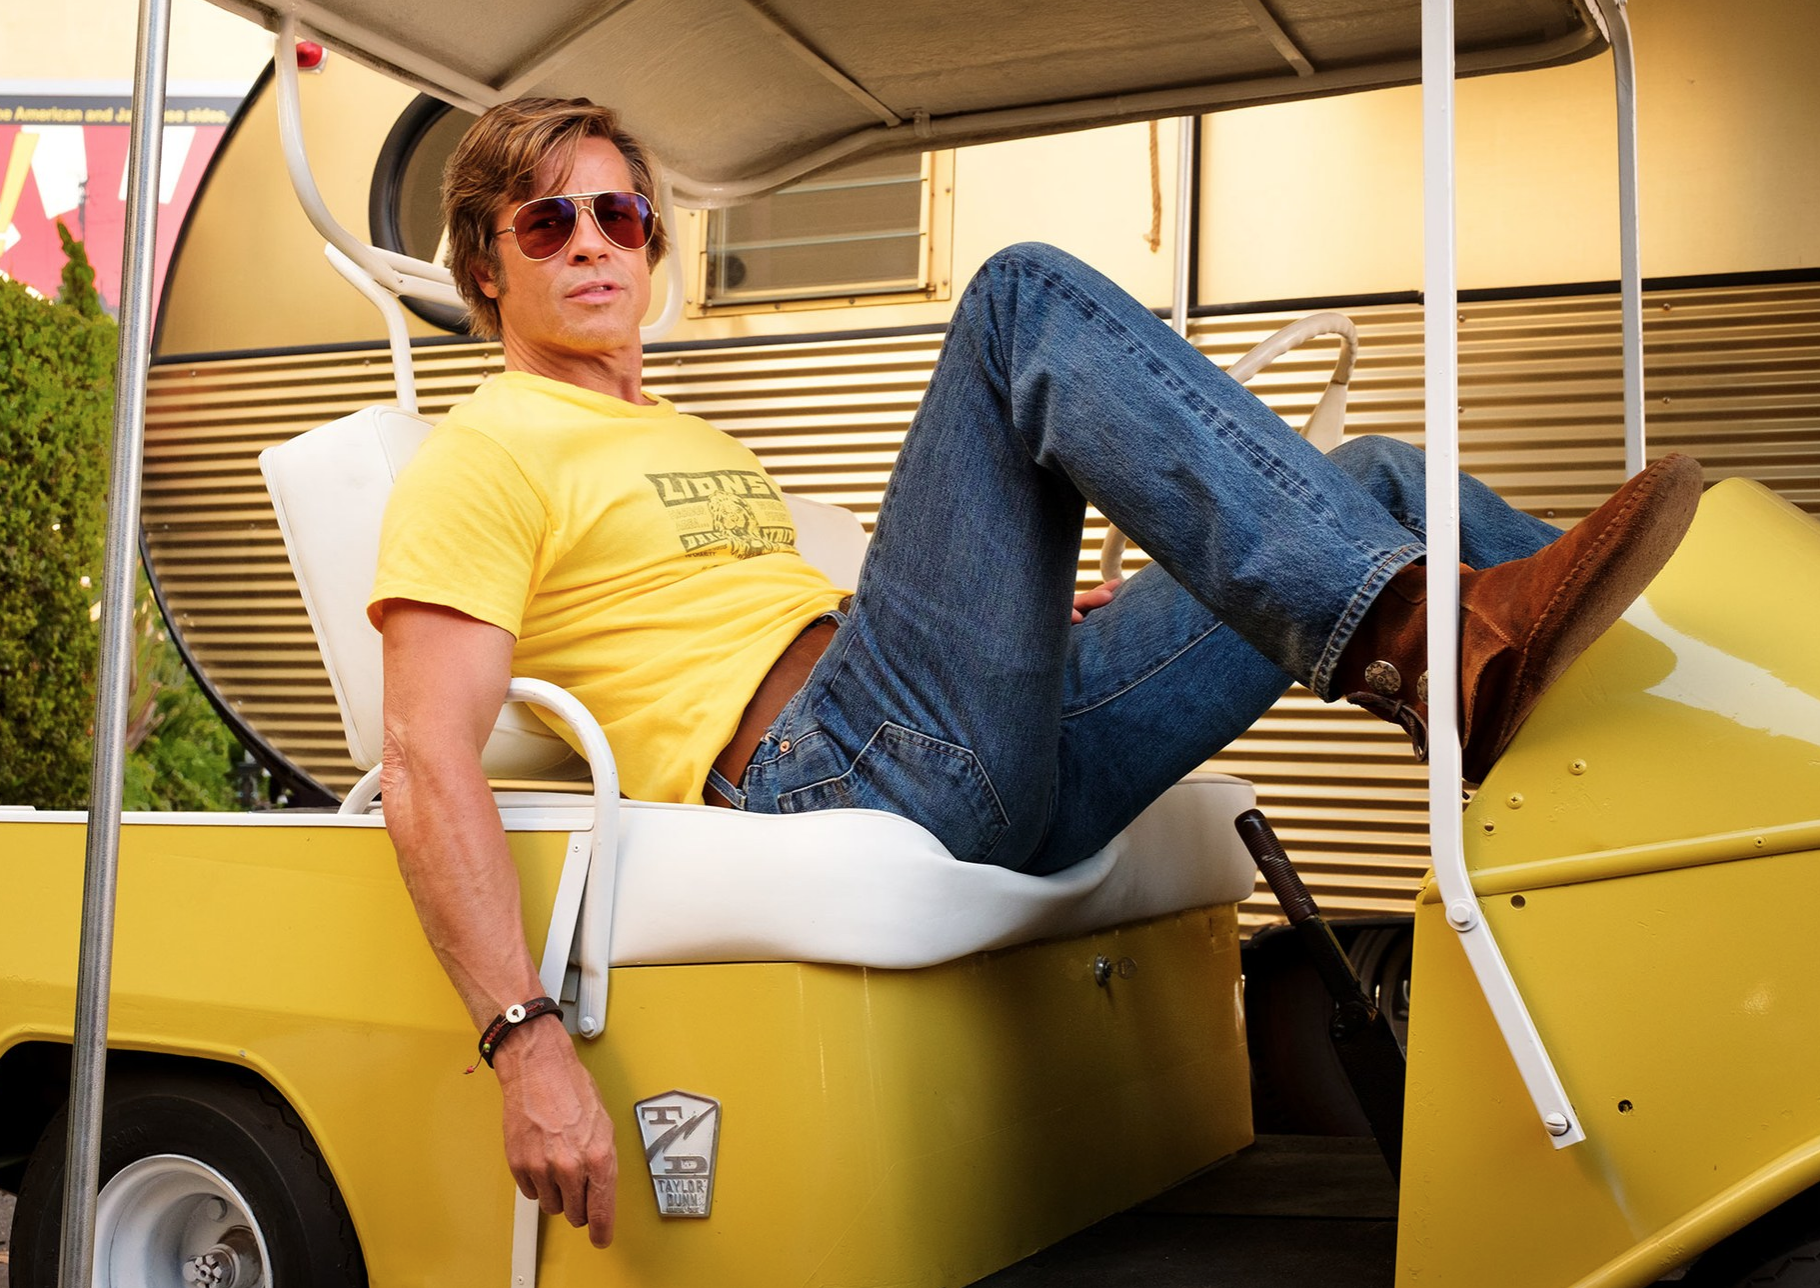 Brad Pitt, Quentin Tarantino, Once Upon a Time in Hollywood, Vanity Fair, 2019